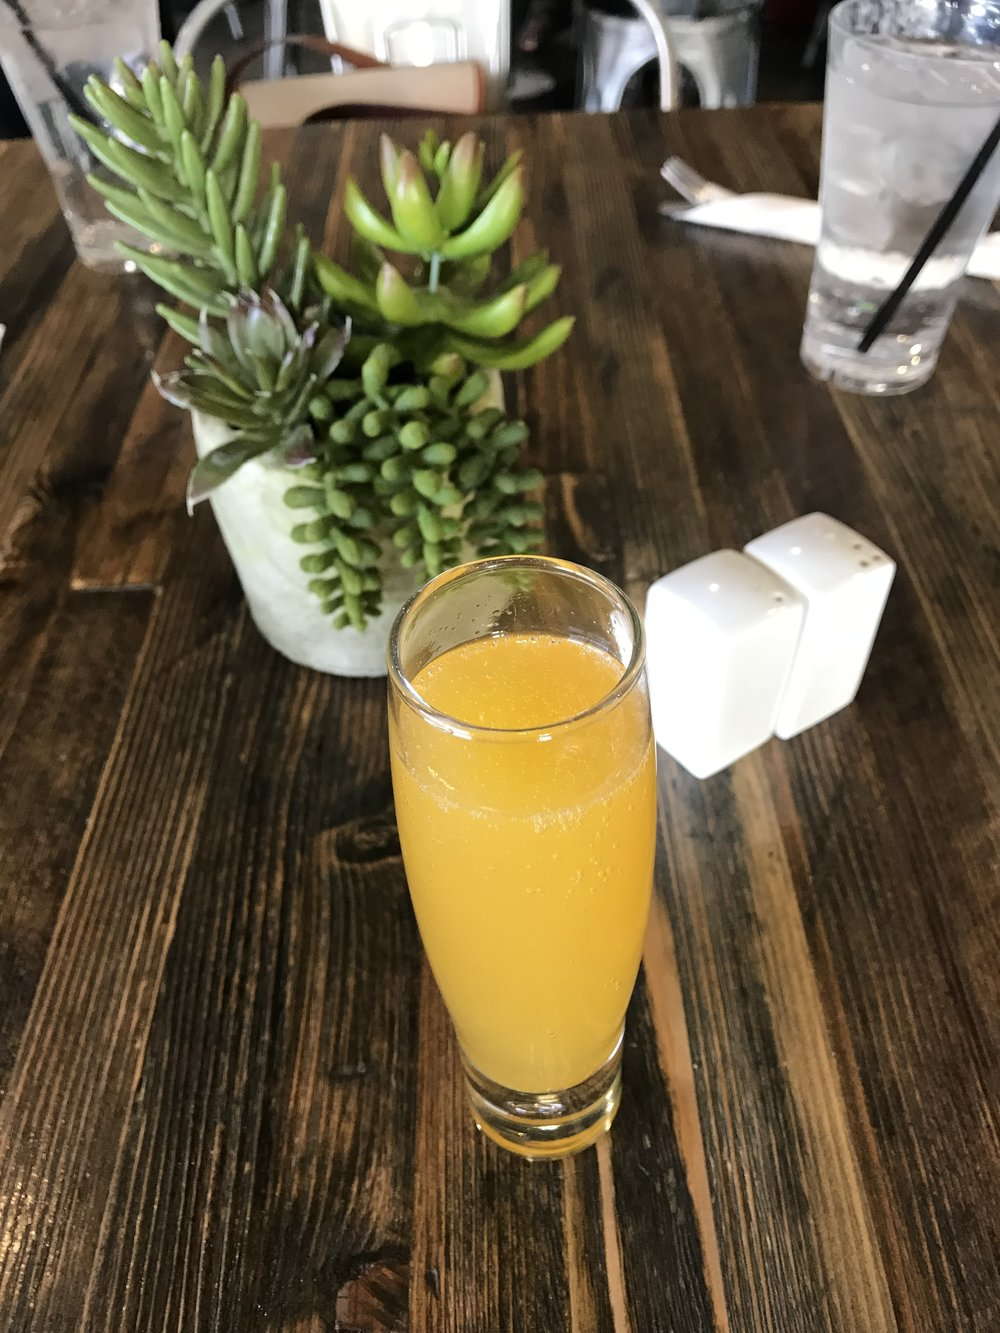 The Passionfruit Mimosa